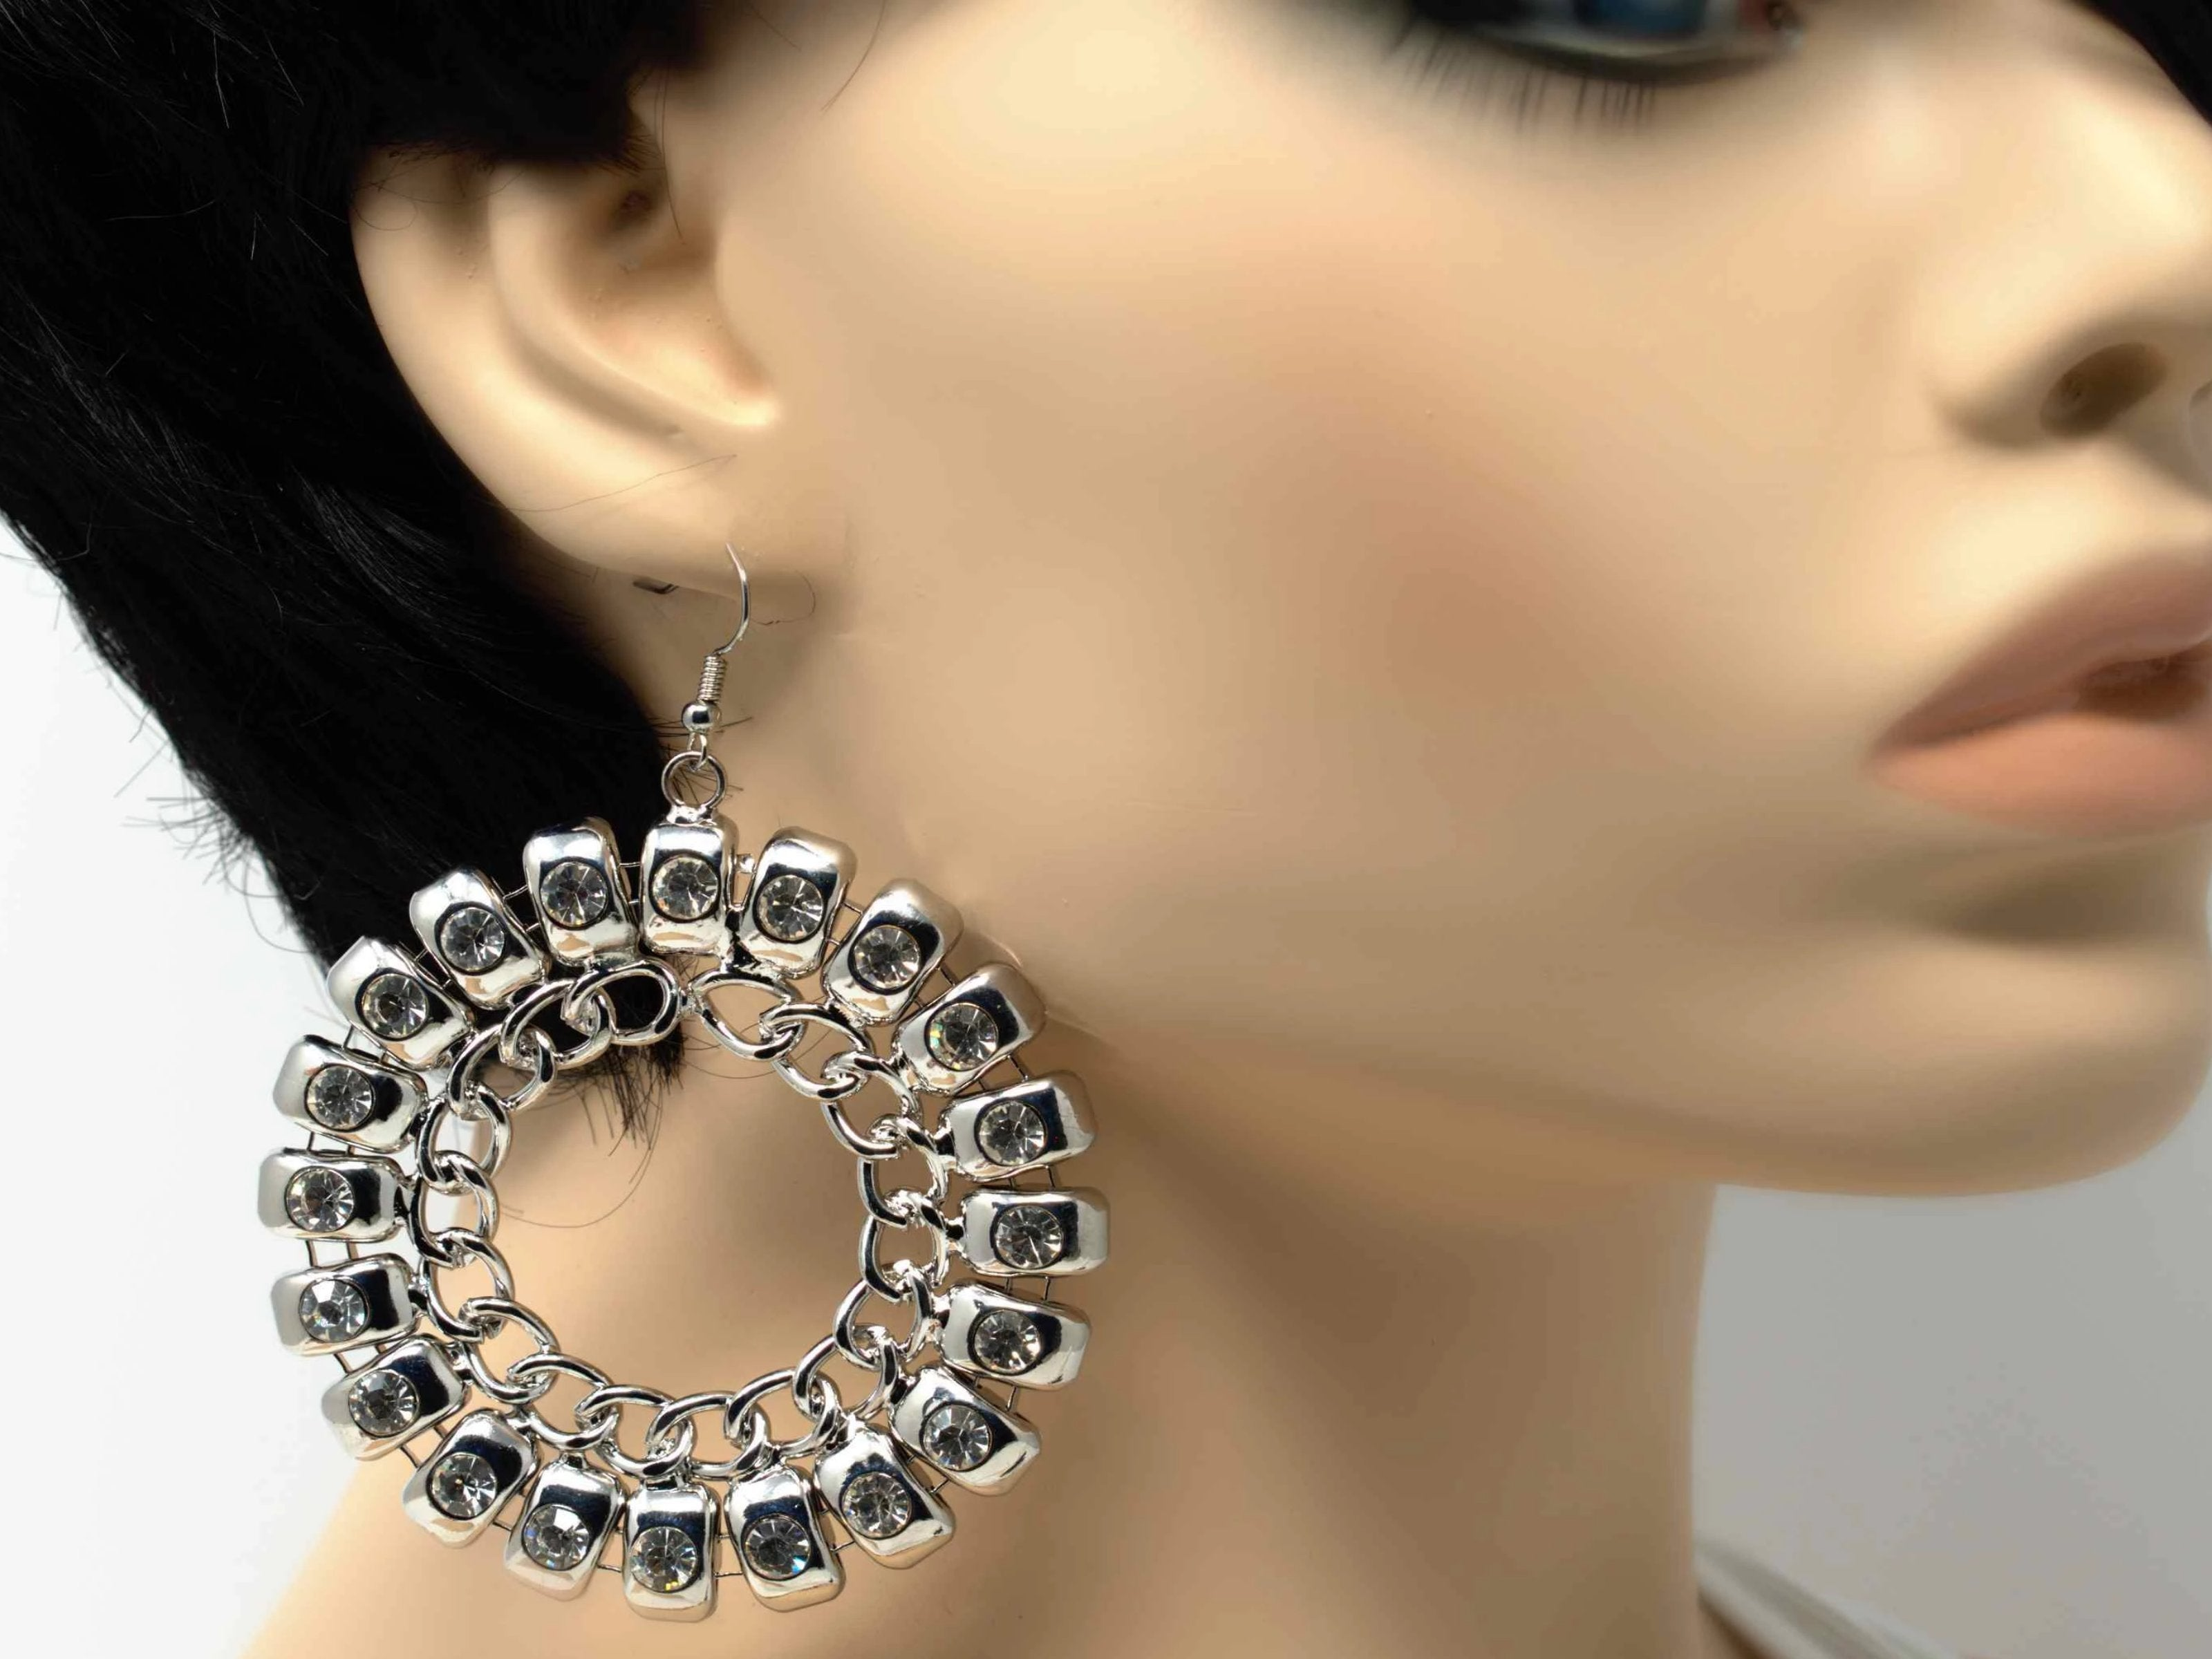 An exquisite silver dangle drop fashion earring with stones and chain accent and a fish hook clasp.